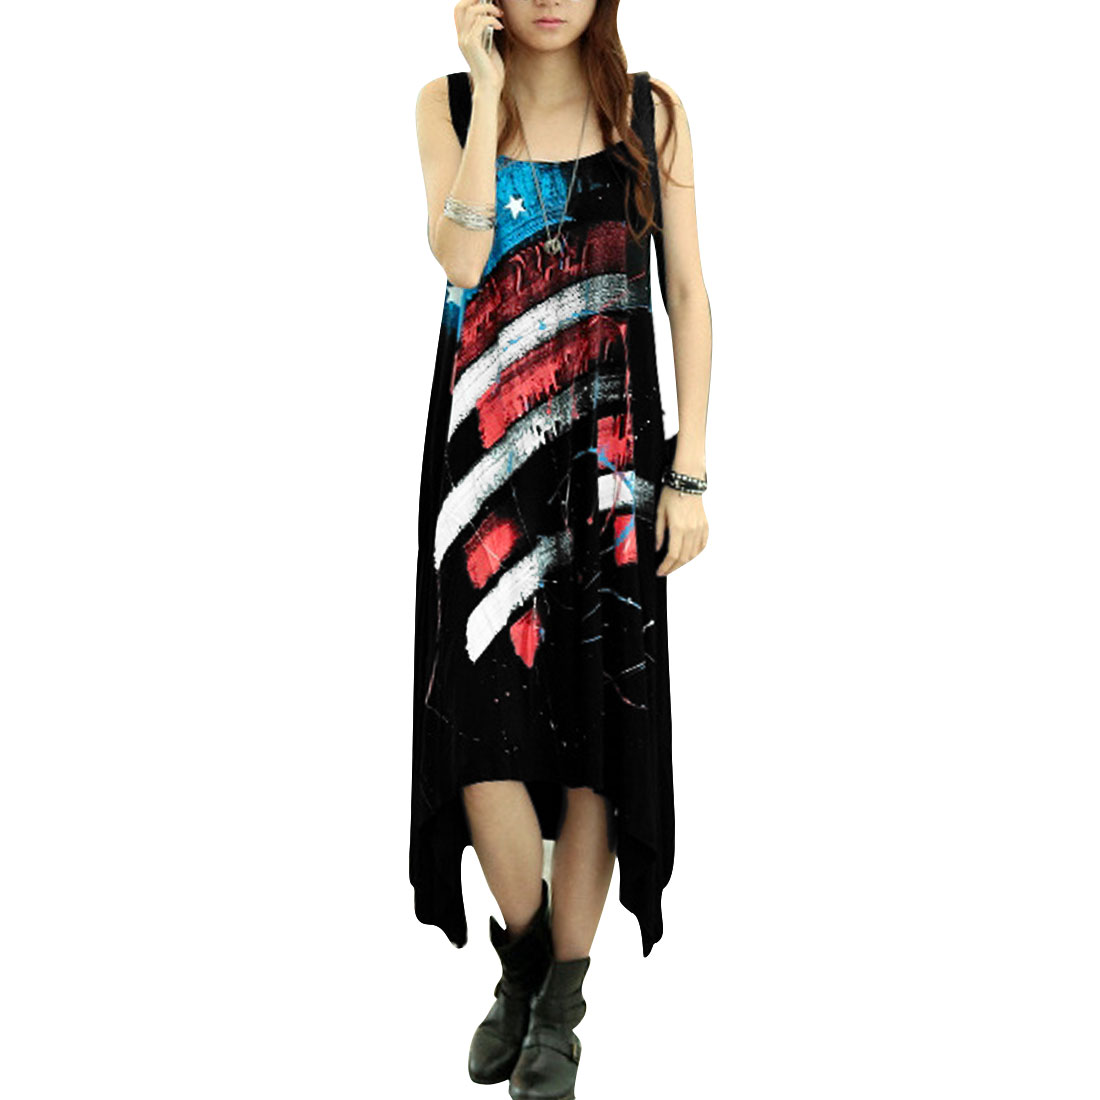 Women Flag Pattern Scoop Neck Sleeveless Style Graffiti Design Dress Black L